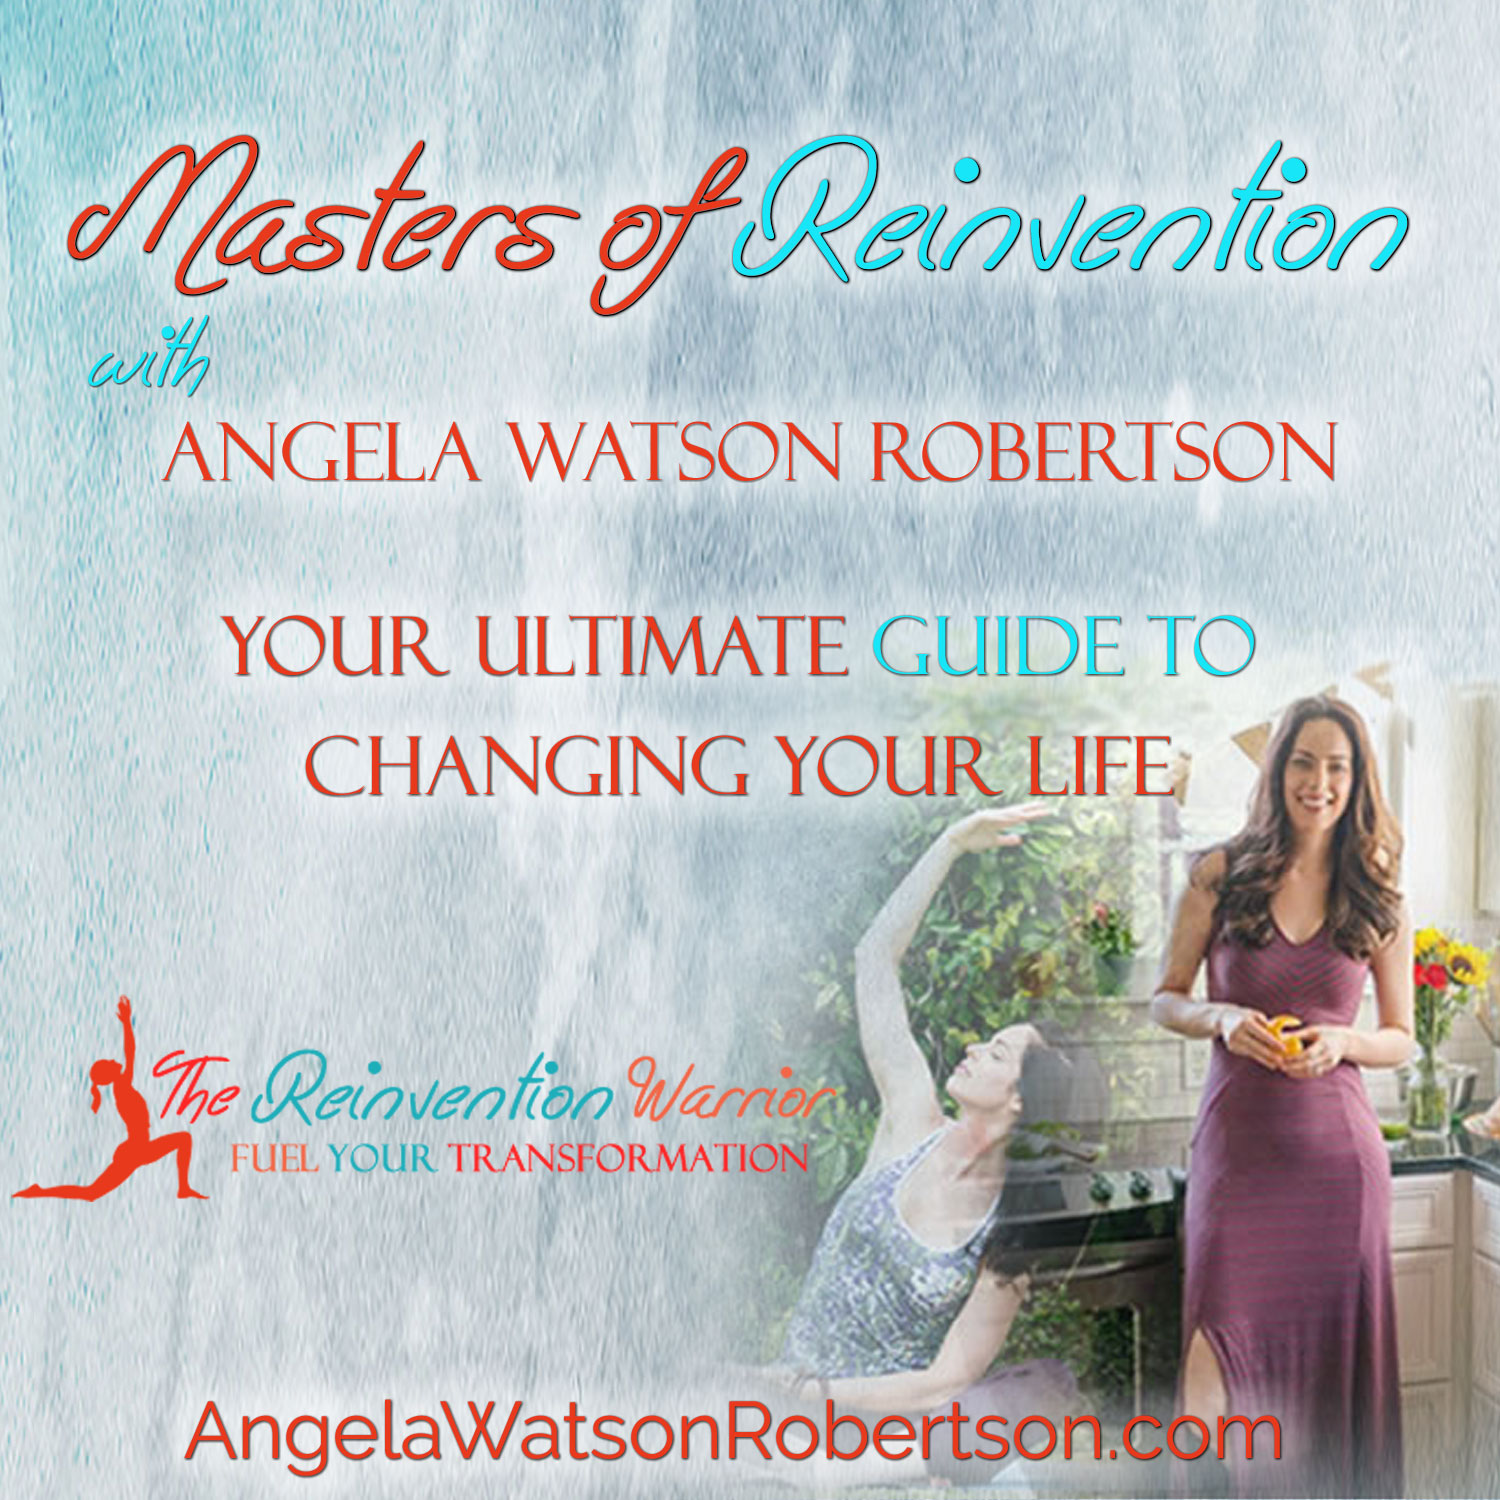 Masters of Reinvention with Angela Watson Robertson